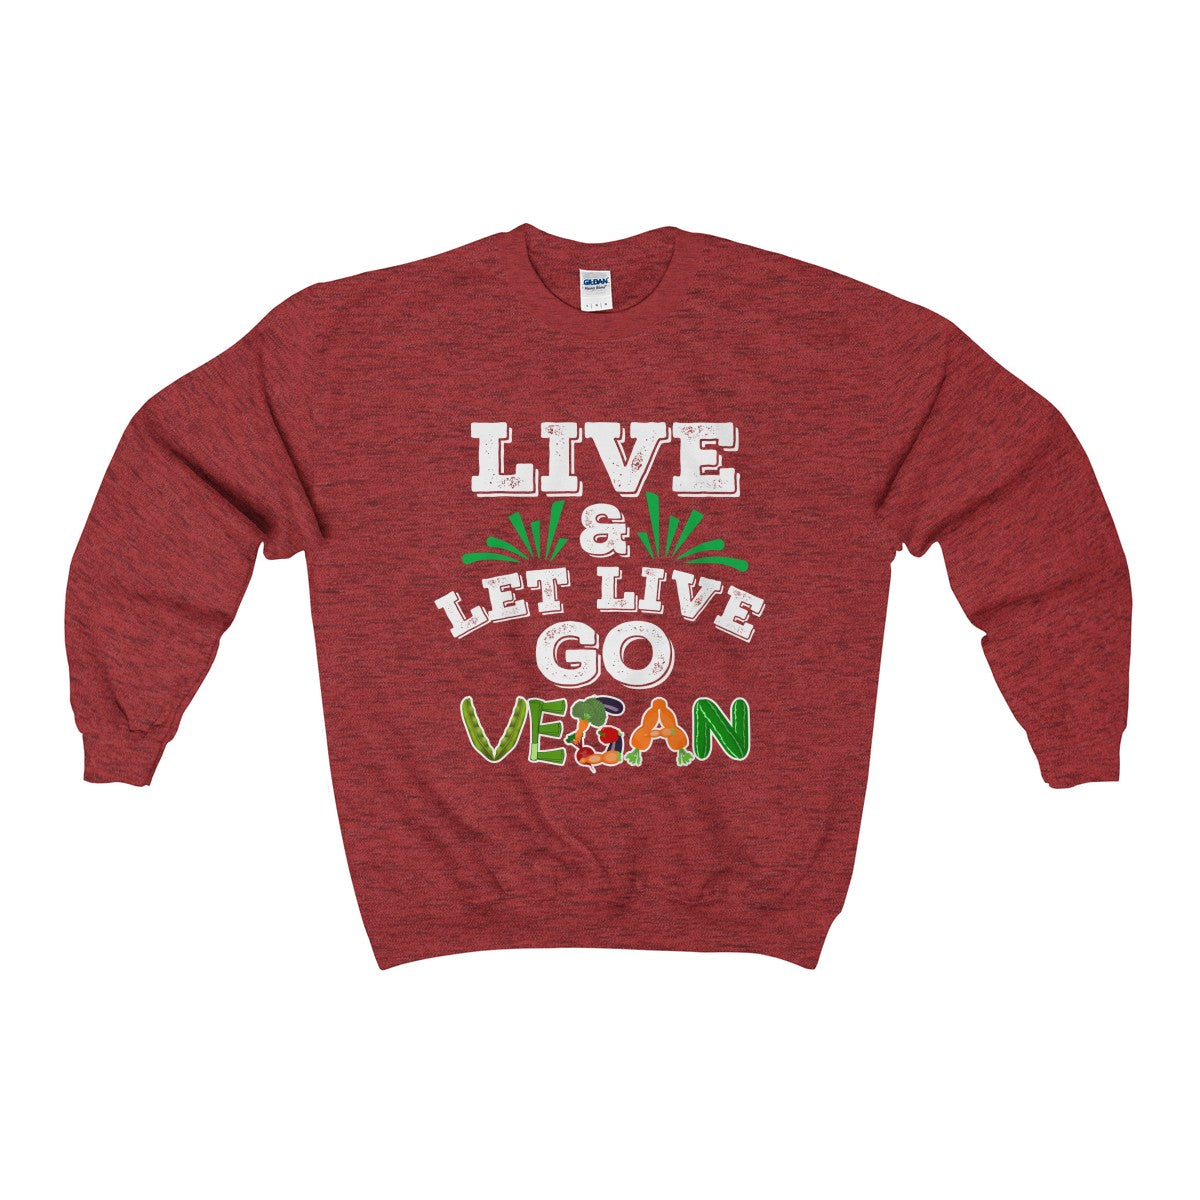 Vegan Sweatshirt Slogan Live And Let Live Go Vegan Unisex Heavy Blend™ Crewneck Sweatshirt - DaVatka Fashion